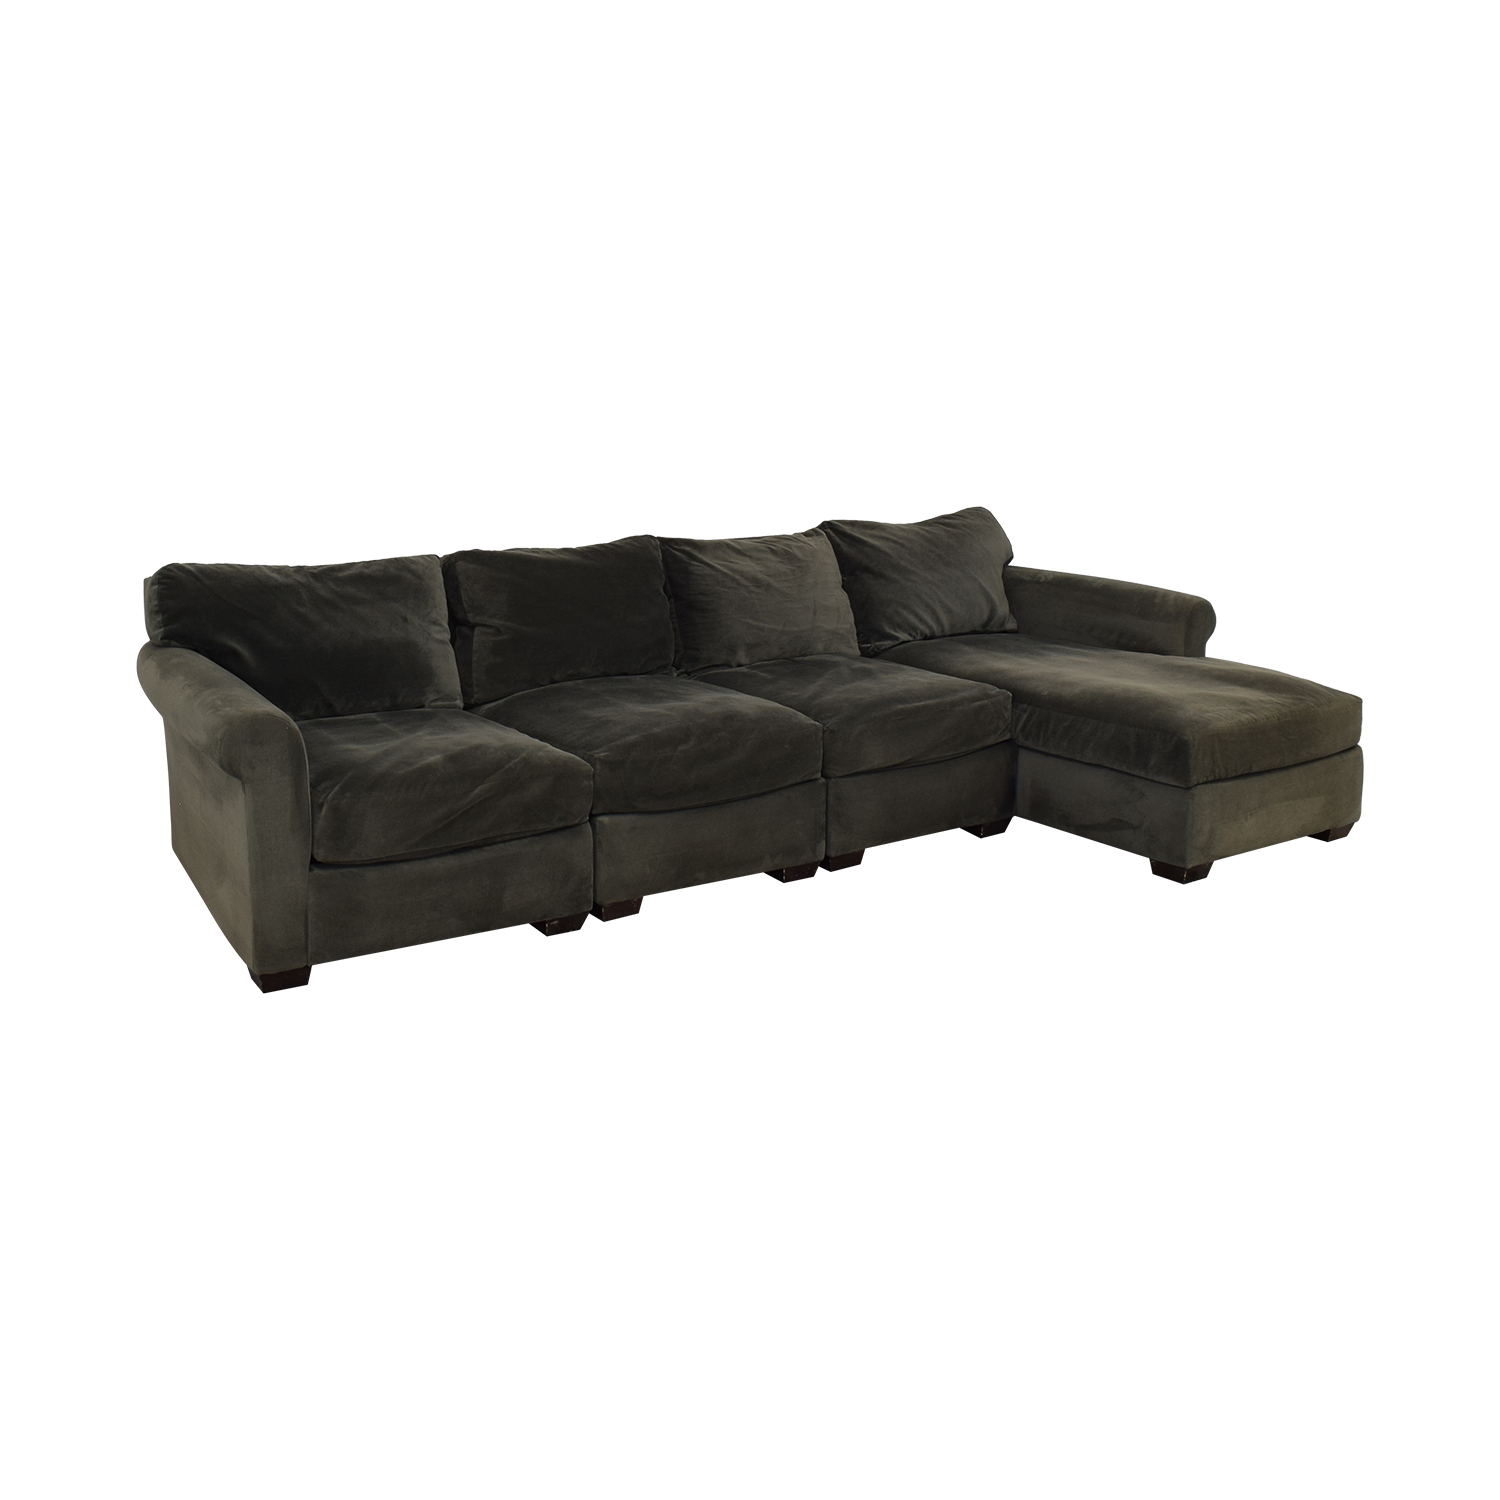 Macy's Macy's Chaise Sectional Sofa dimensions